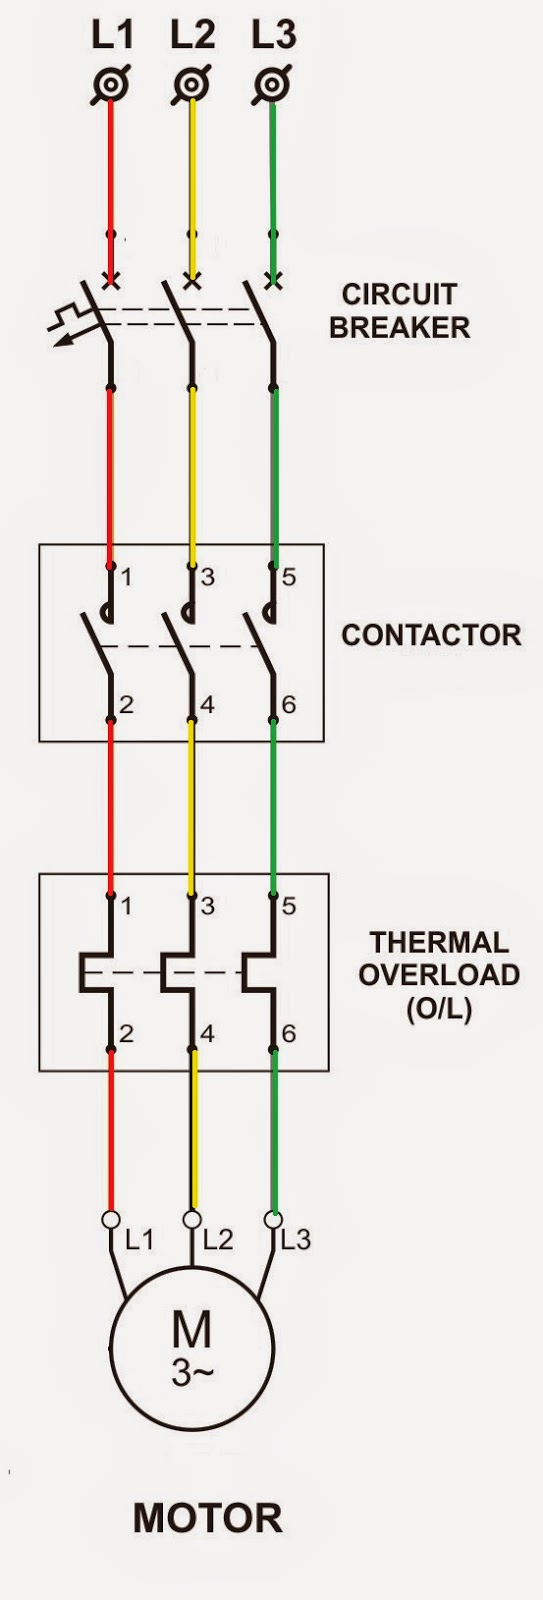 electrical standards direct online dol starter rh electrialstandards blogspot com control wiring diagram of dol starter schematic wiring diagram of dol starter